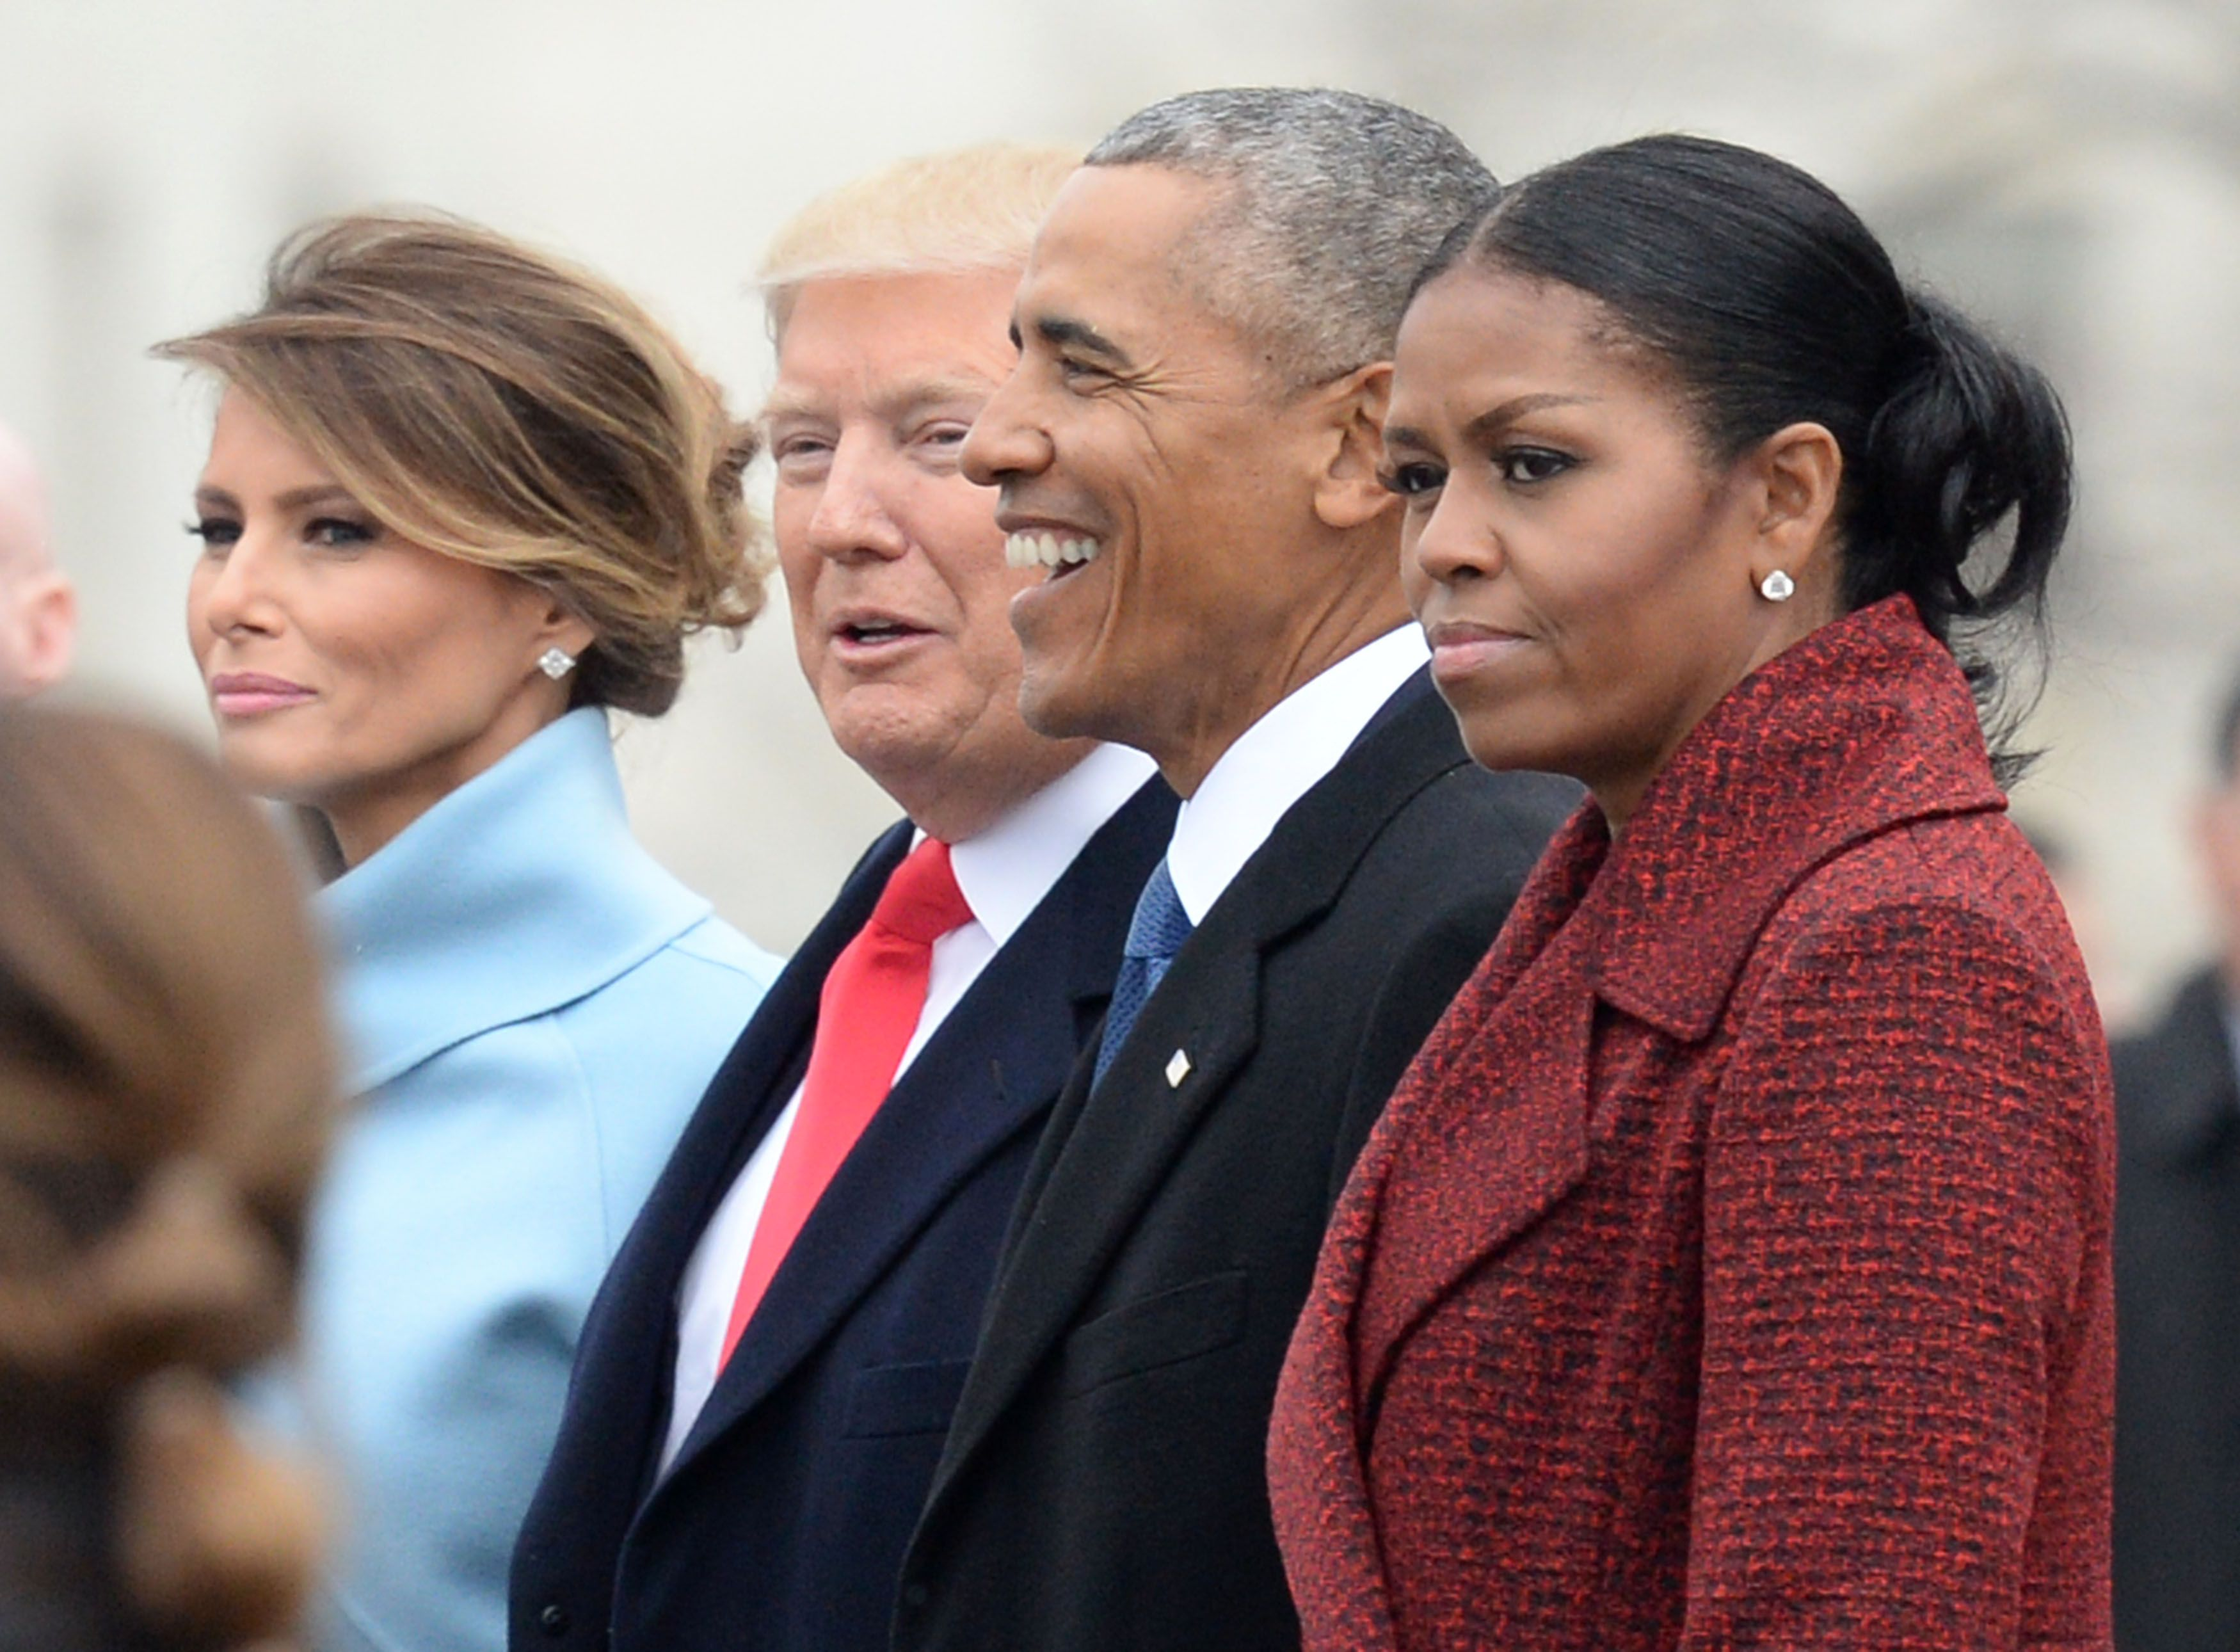 Michelle Obama Speaks Out on Trump Refusing to Concede to Biden: 'This Isn't a Game'